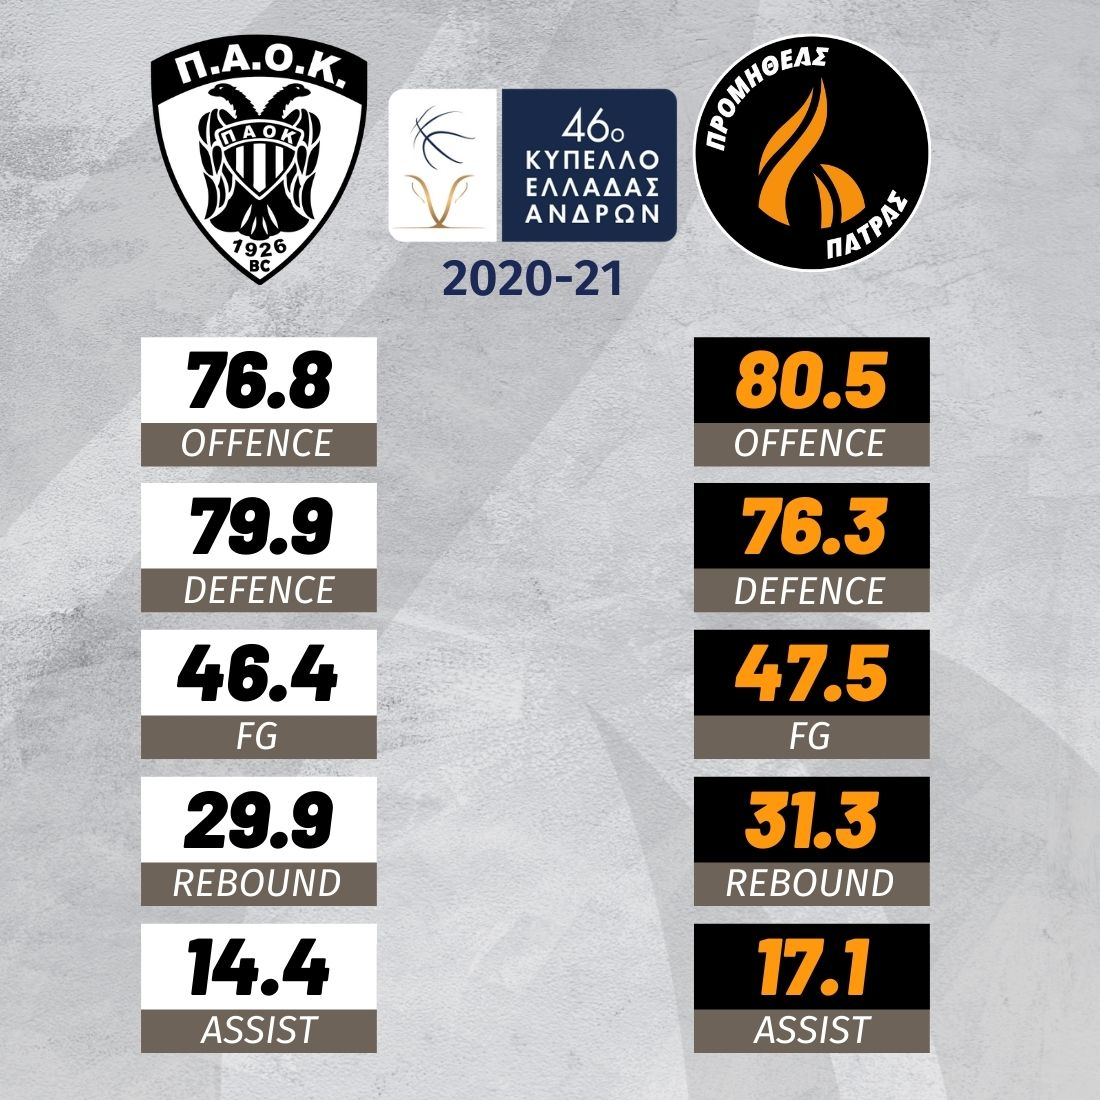 GREEK CUP SF PAOK PROMITHEAS 12022021